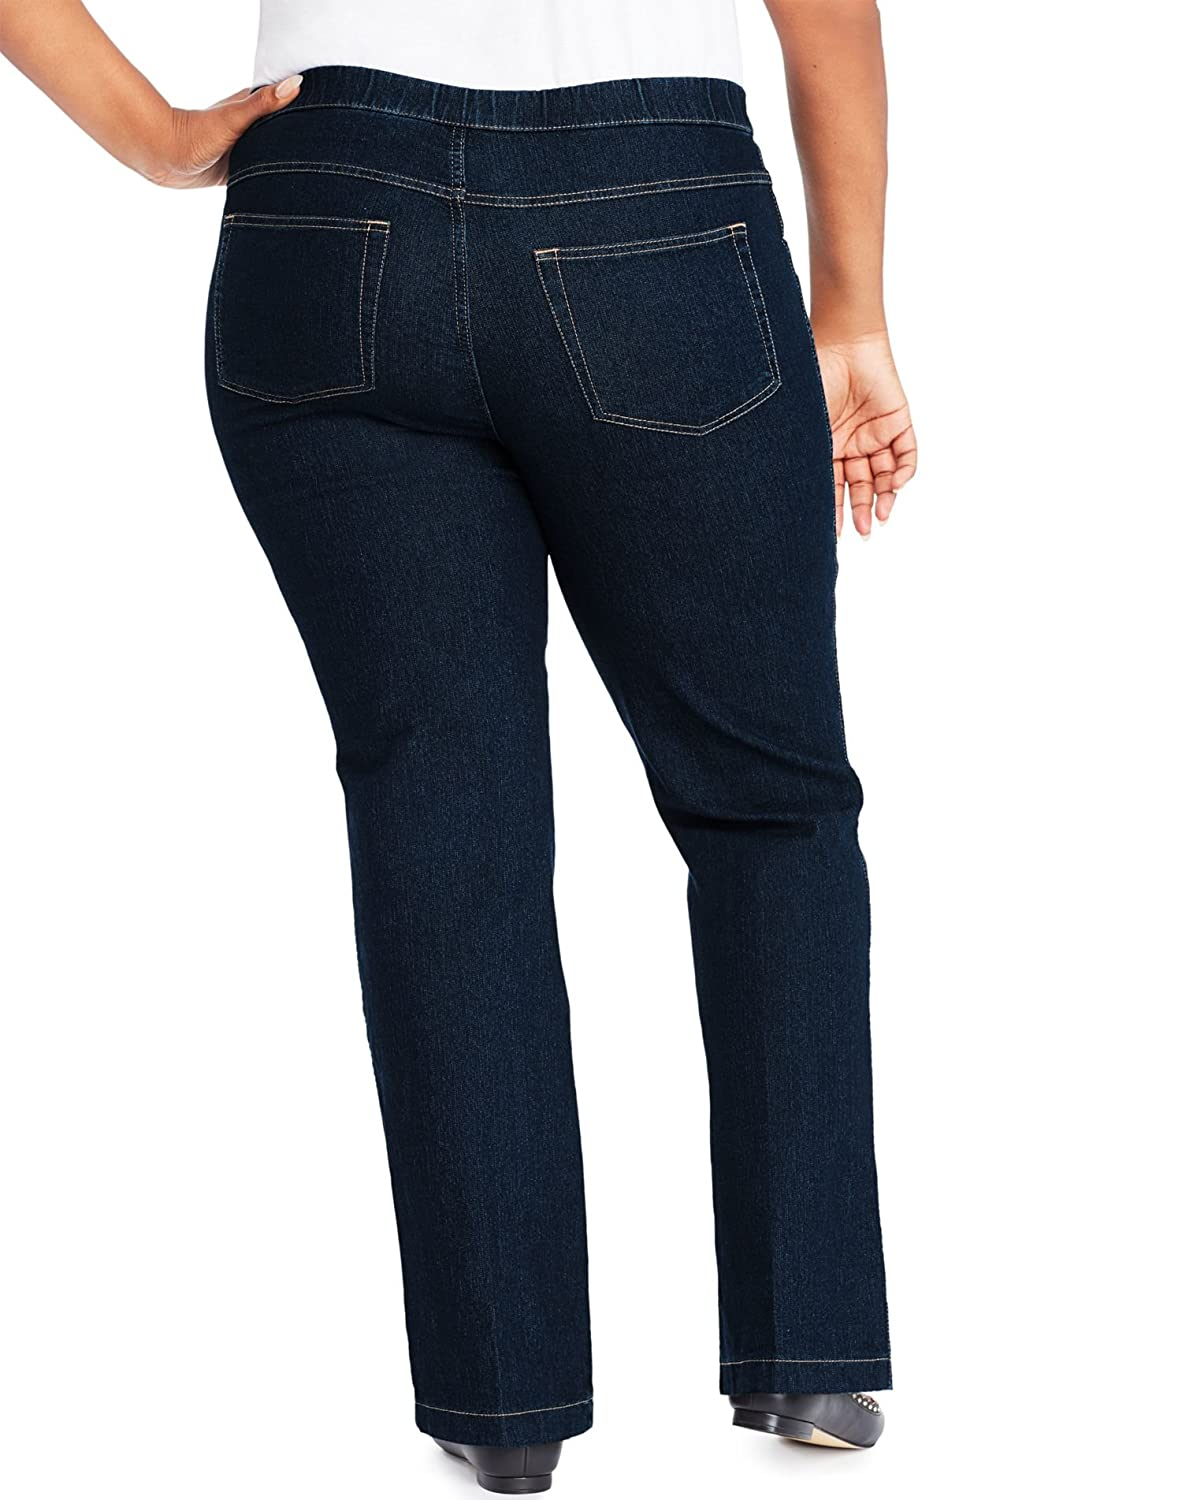 Just My Size Womens 4-Pocket Bootcut Jeans, Average Length, 1X, Blue Rinse